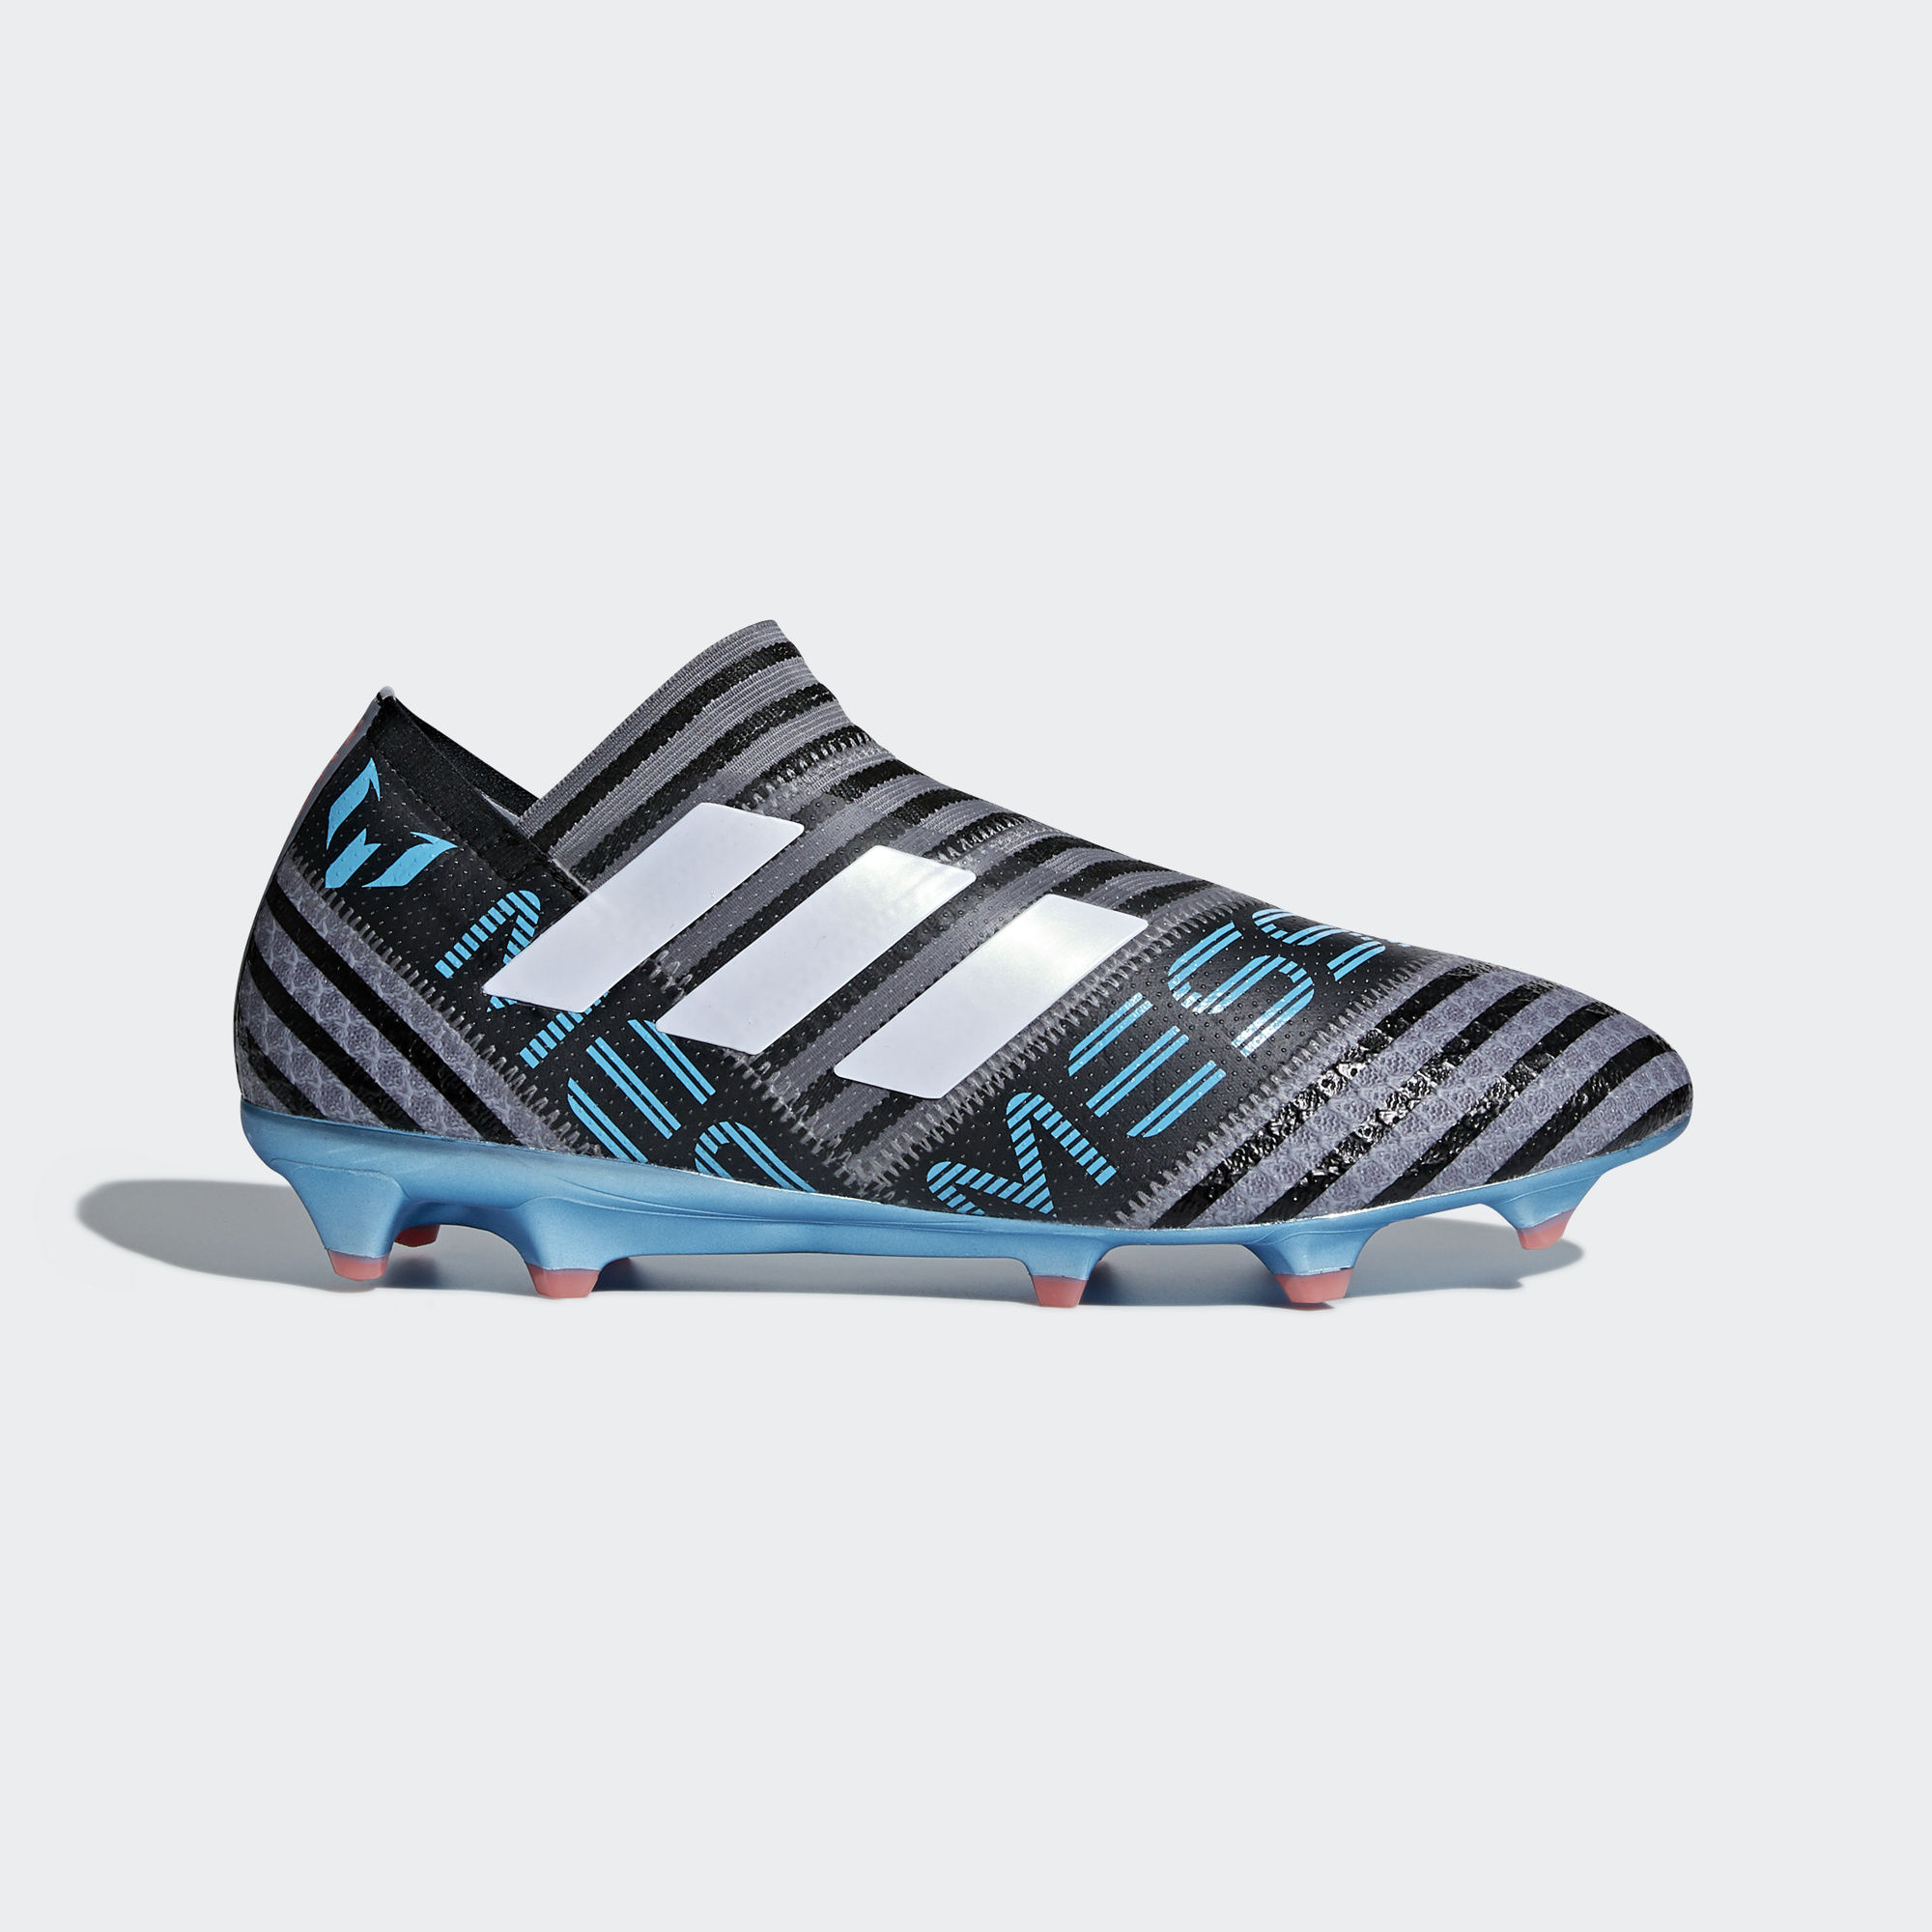 7401fcff2 ... TORSION TAPESecure lockdown and ankle stability with a DUAL LOCK  COLLARLightweight messiGAMBETRAX 2.0 outsole leaves Messi s unique  footprintSynthetic ...